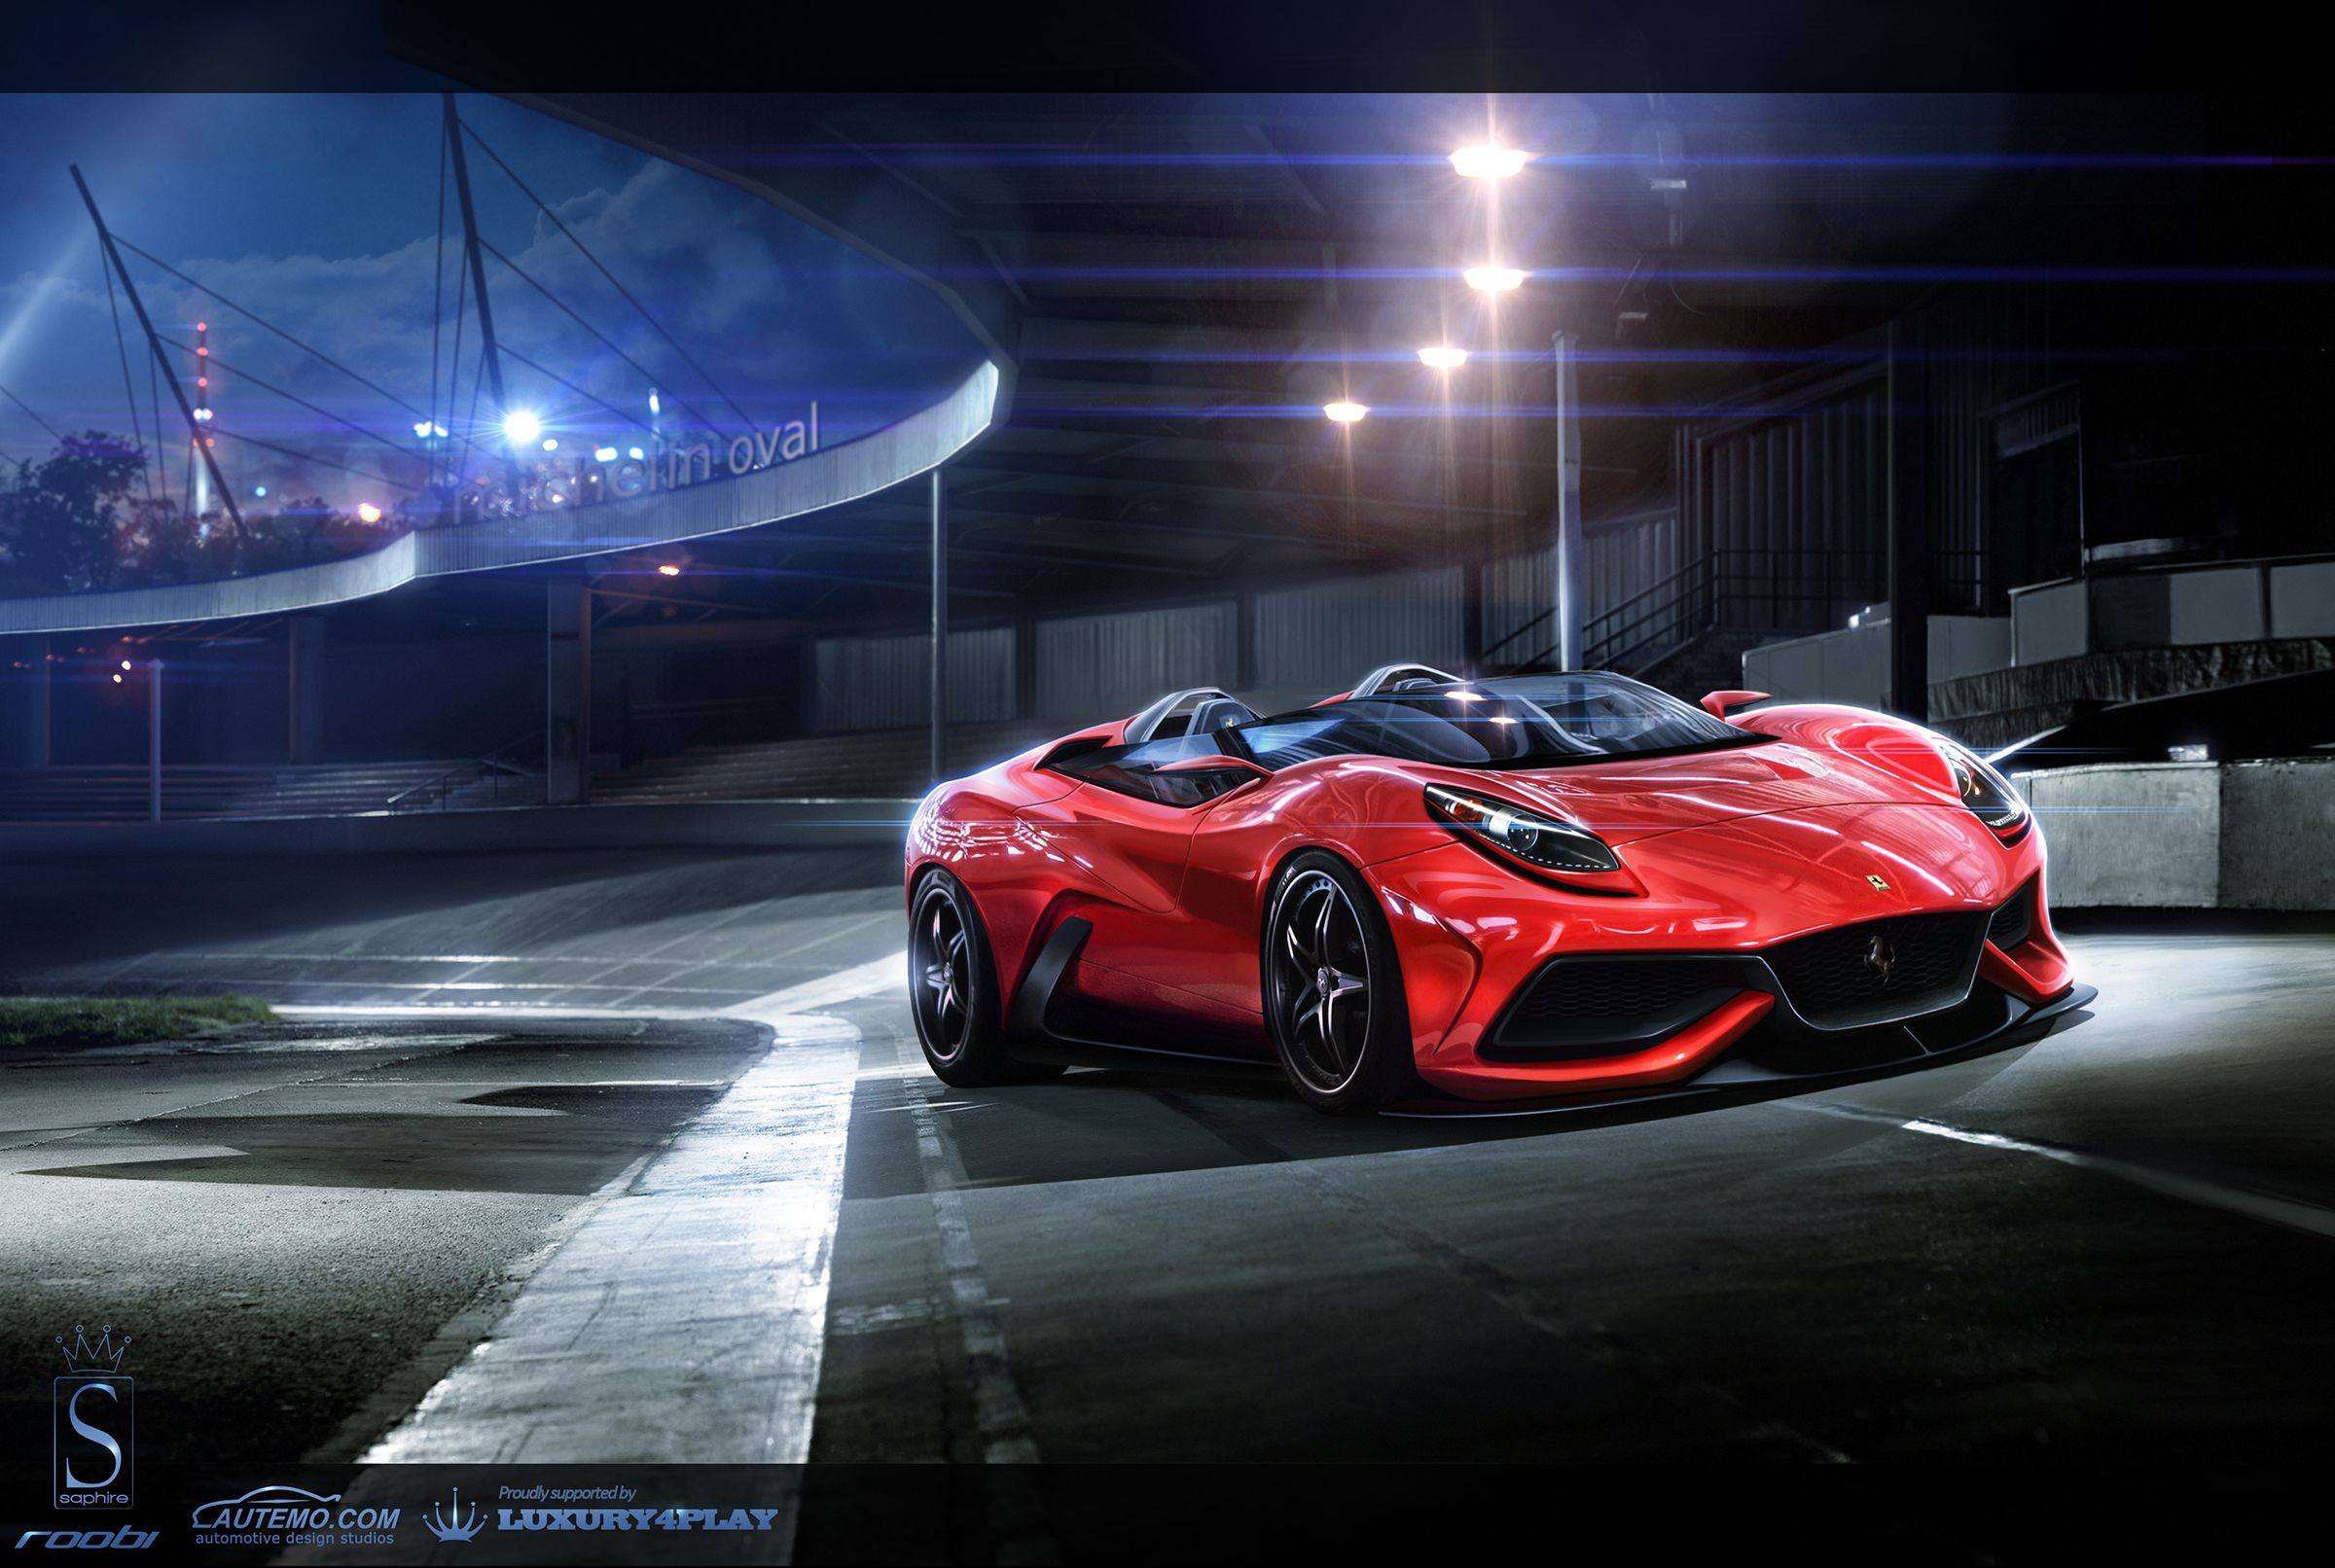 Elegant Cars Live Wallpaper Offers You The Best Animated Backgrounds Of Cars You  Can Imagine! Sport C.